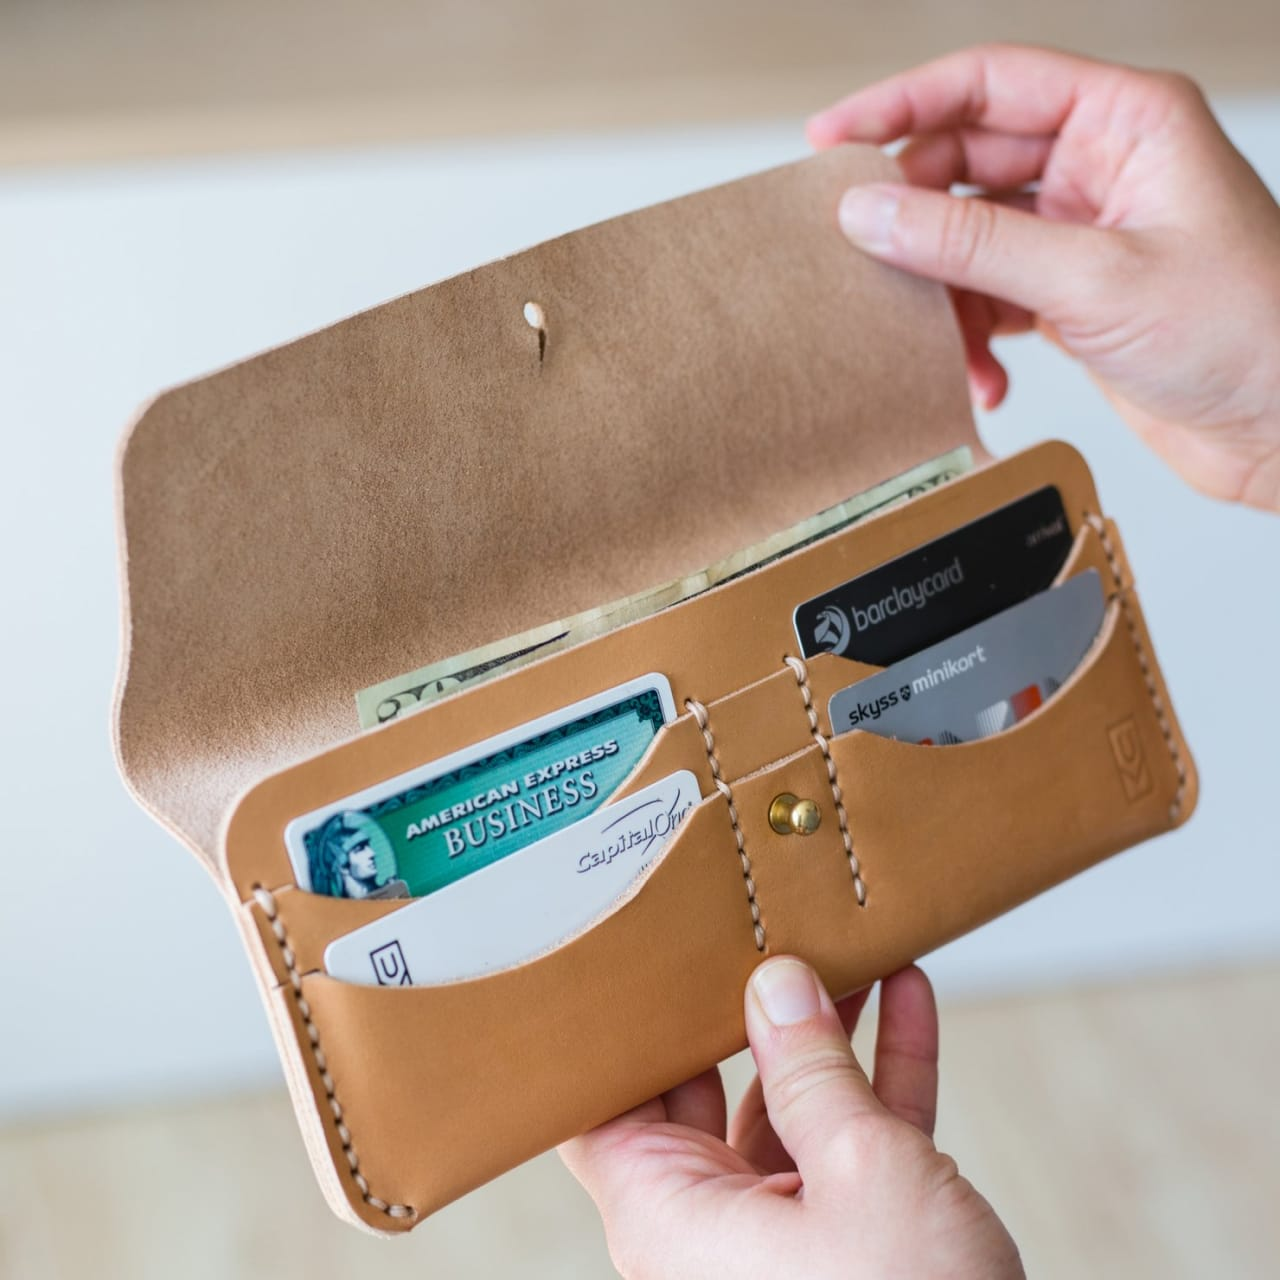 Model opening tan leather long wallet with credit card pockets and cash pouch.